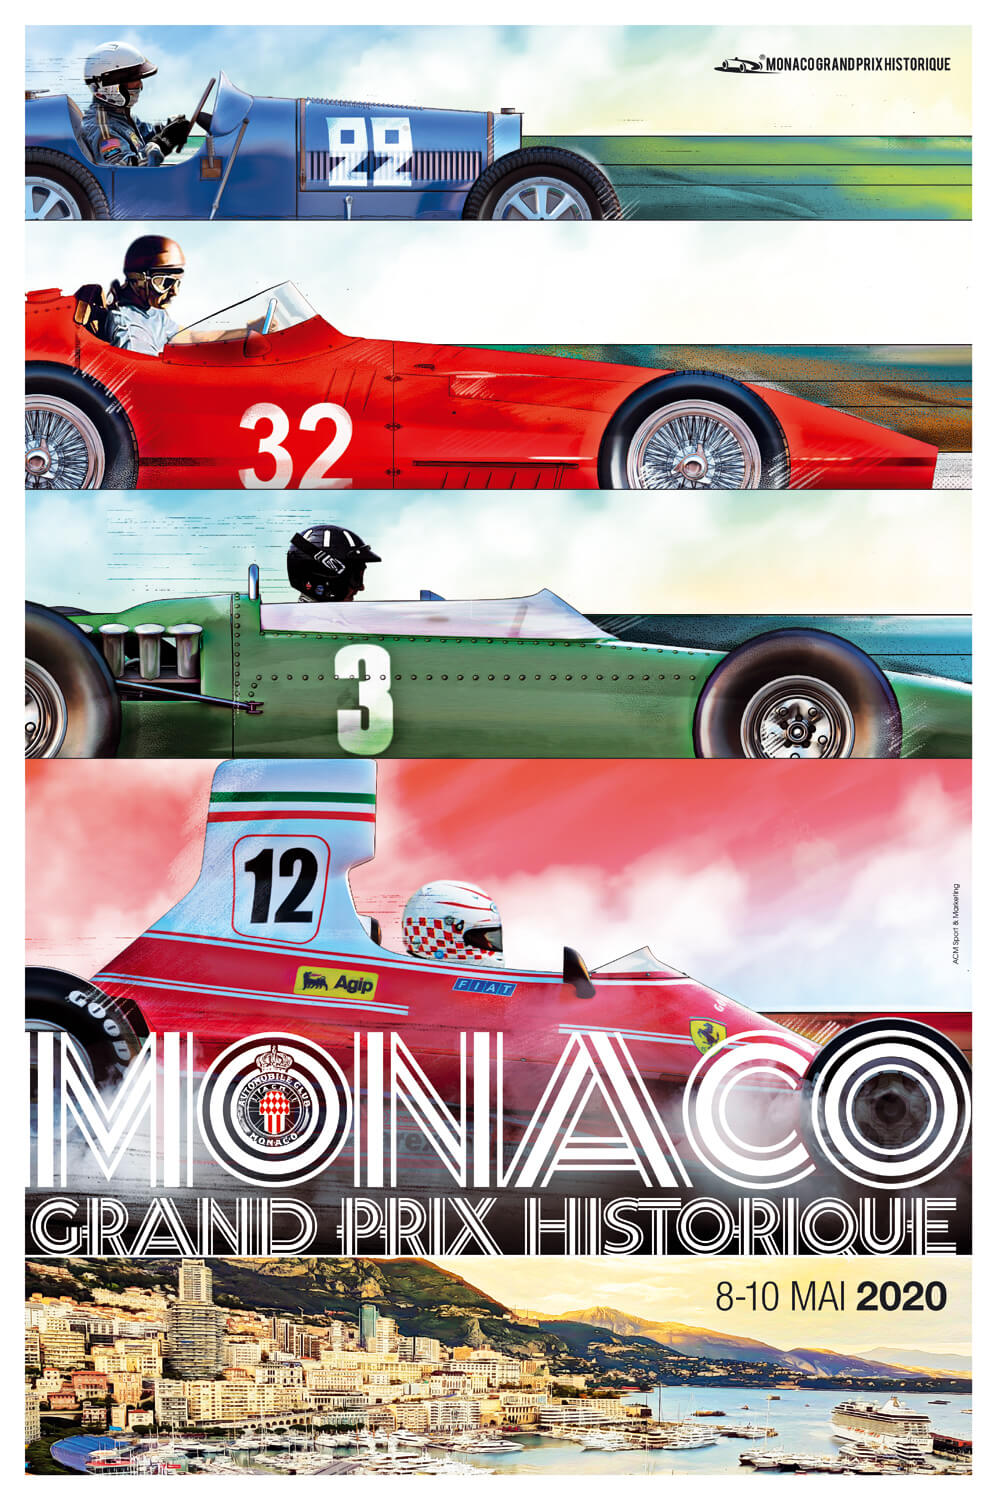 Fans will now have to wait till 2022 for the next event. Credit: Automobile Club Monaco